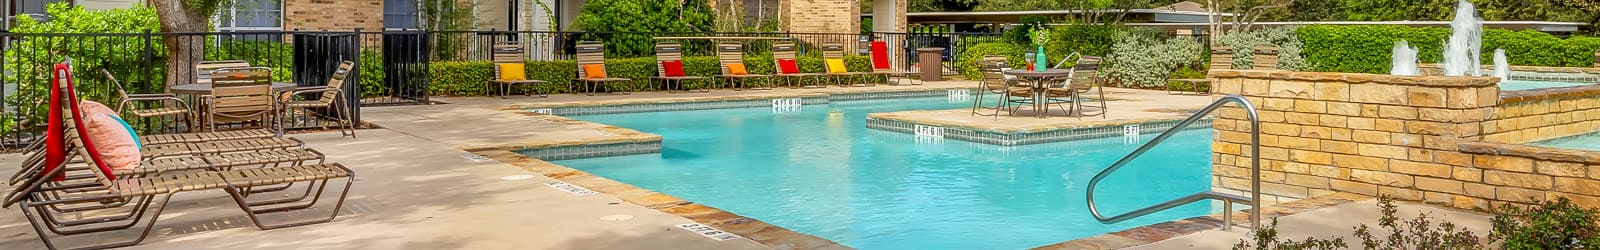 Reviews at Stoneybrook Apartments & Townhomes in San Antonio, Texas